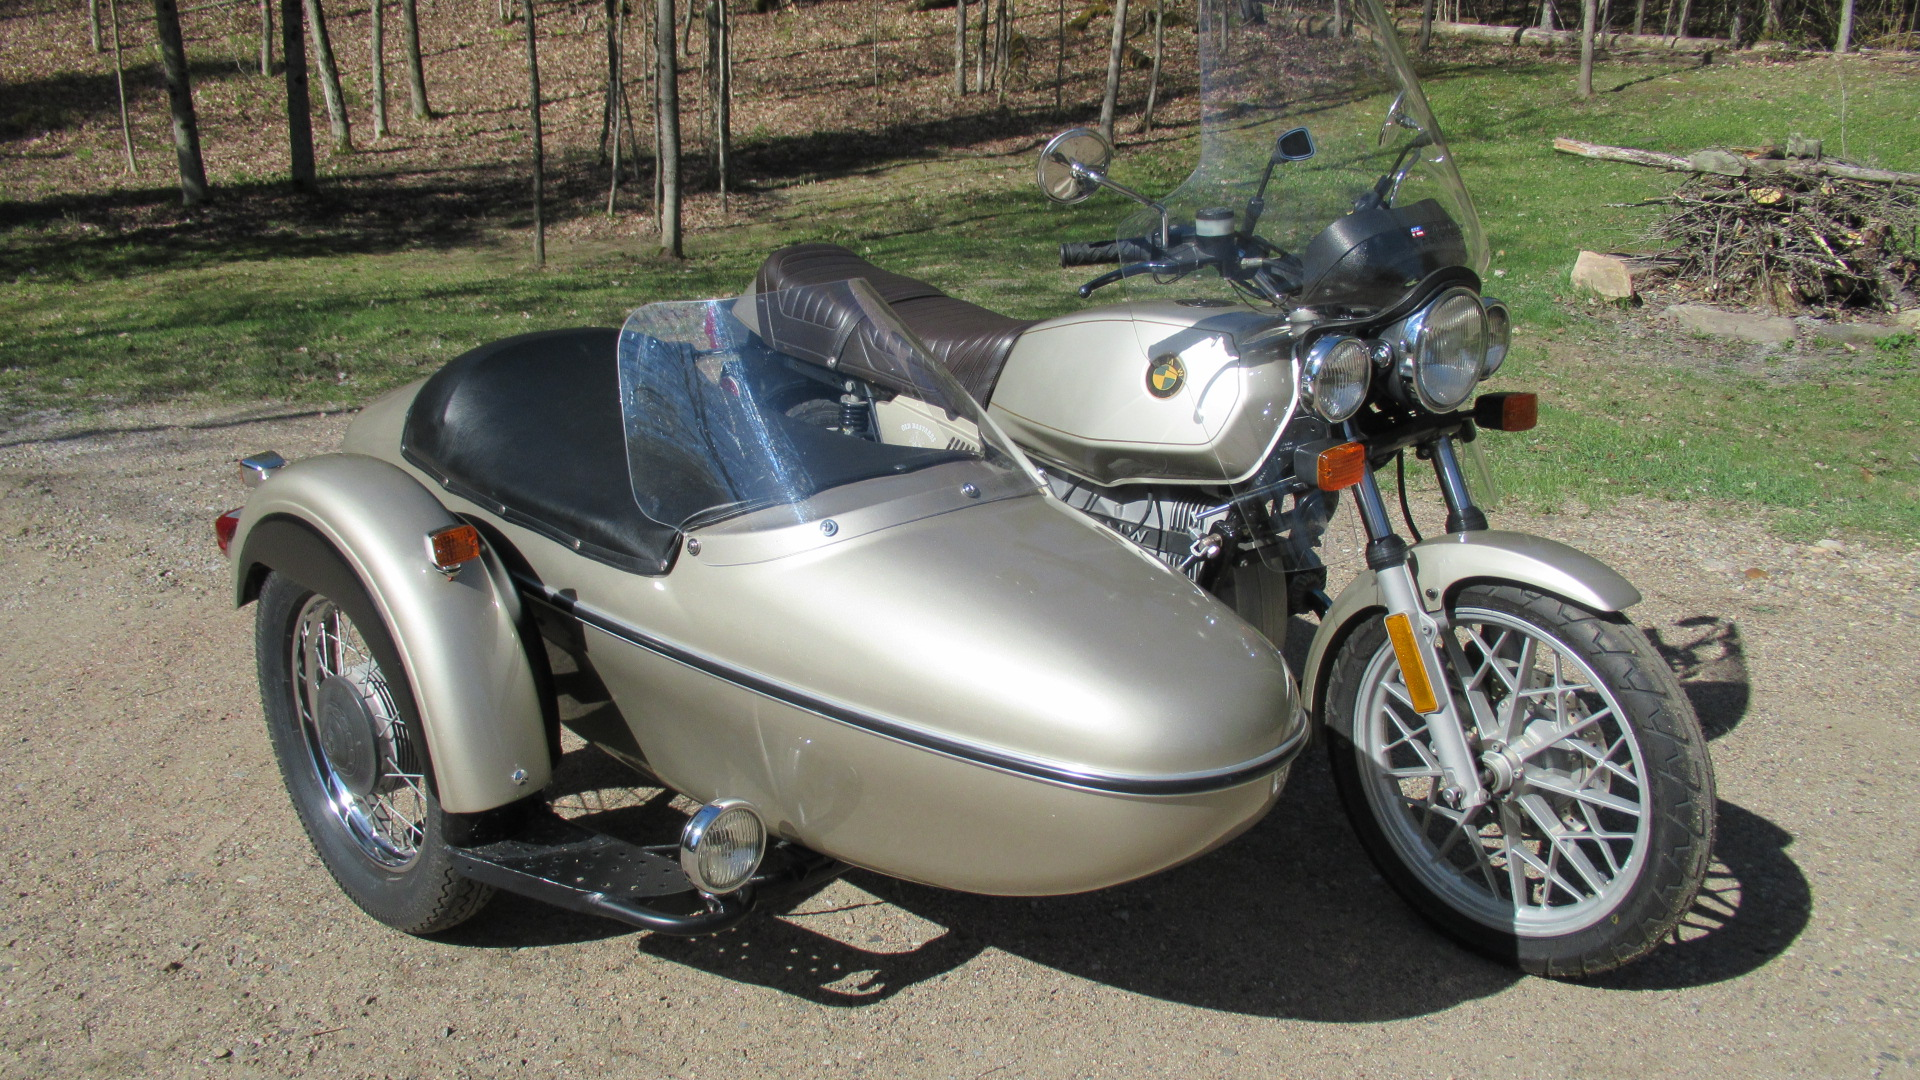 Canadian Vintage Motorcycle Group (CVMG) - For Sale 1979 BMW